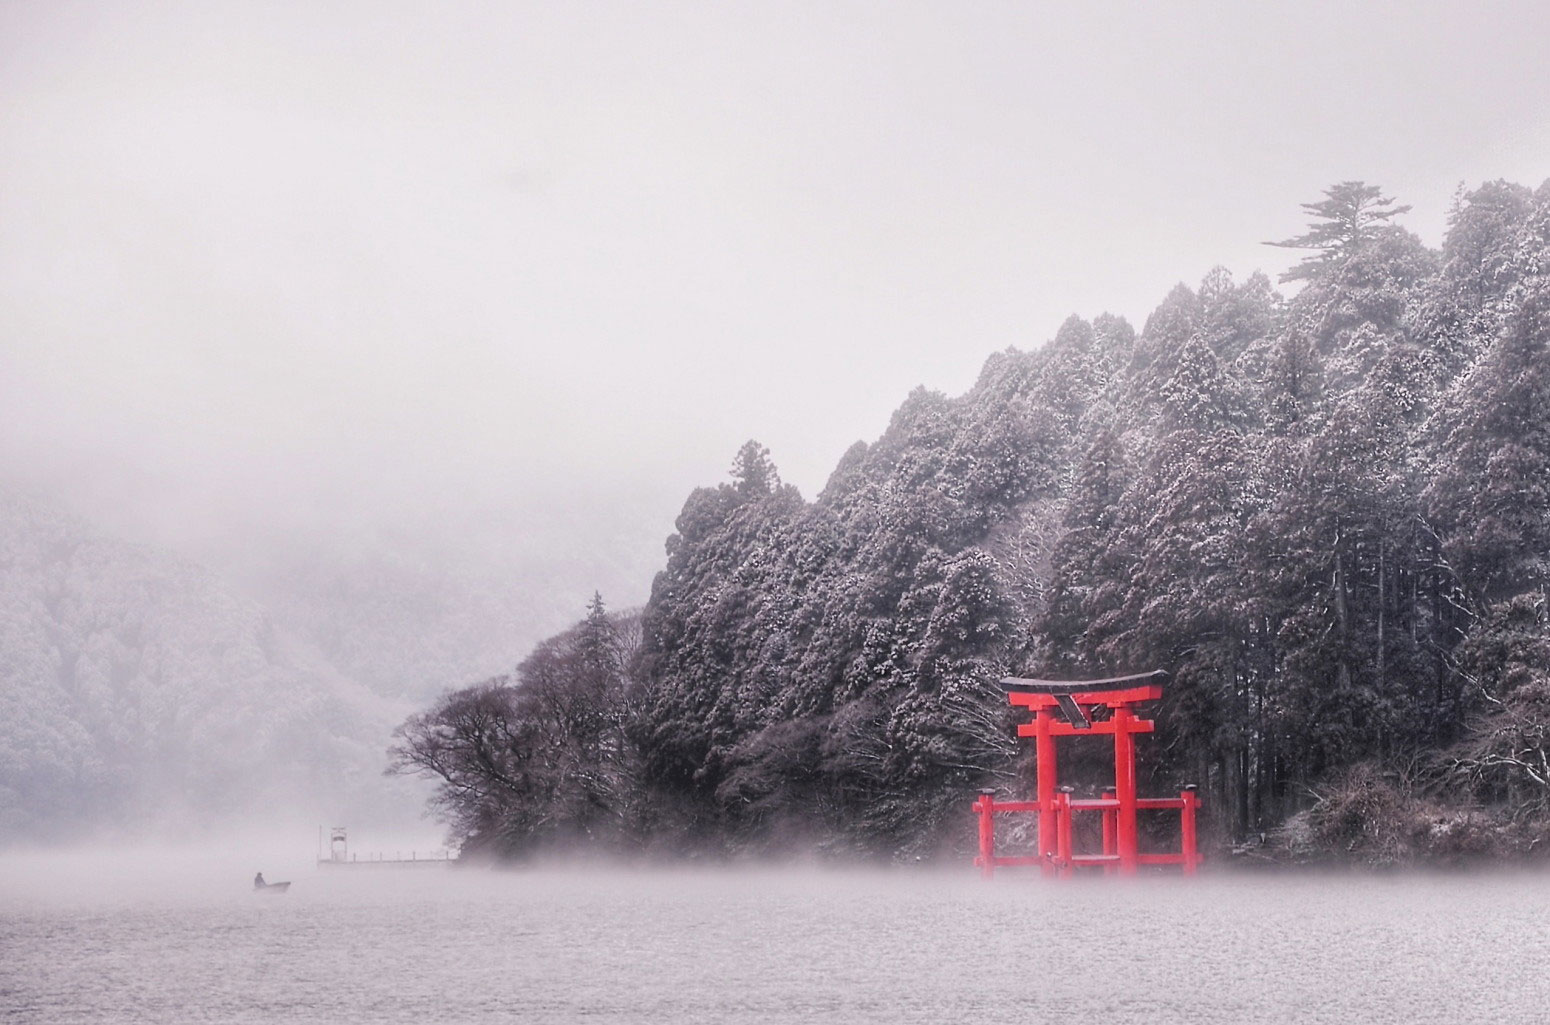 Ashinoko: Lone Fisherman. Foto de philip.graham1